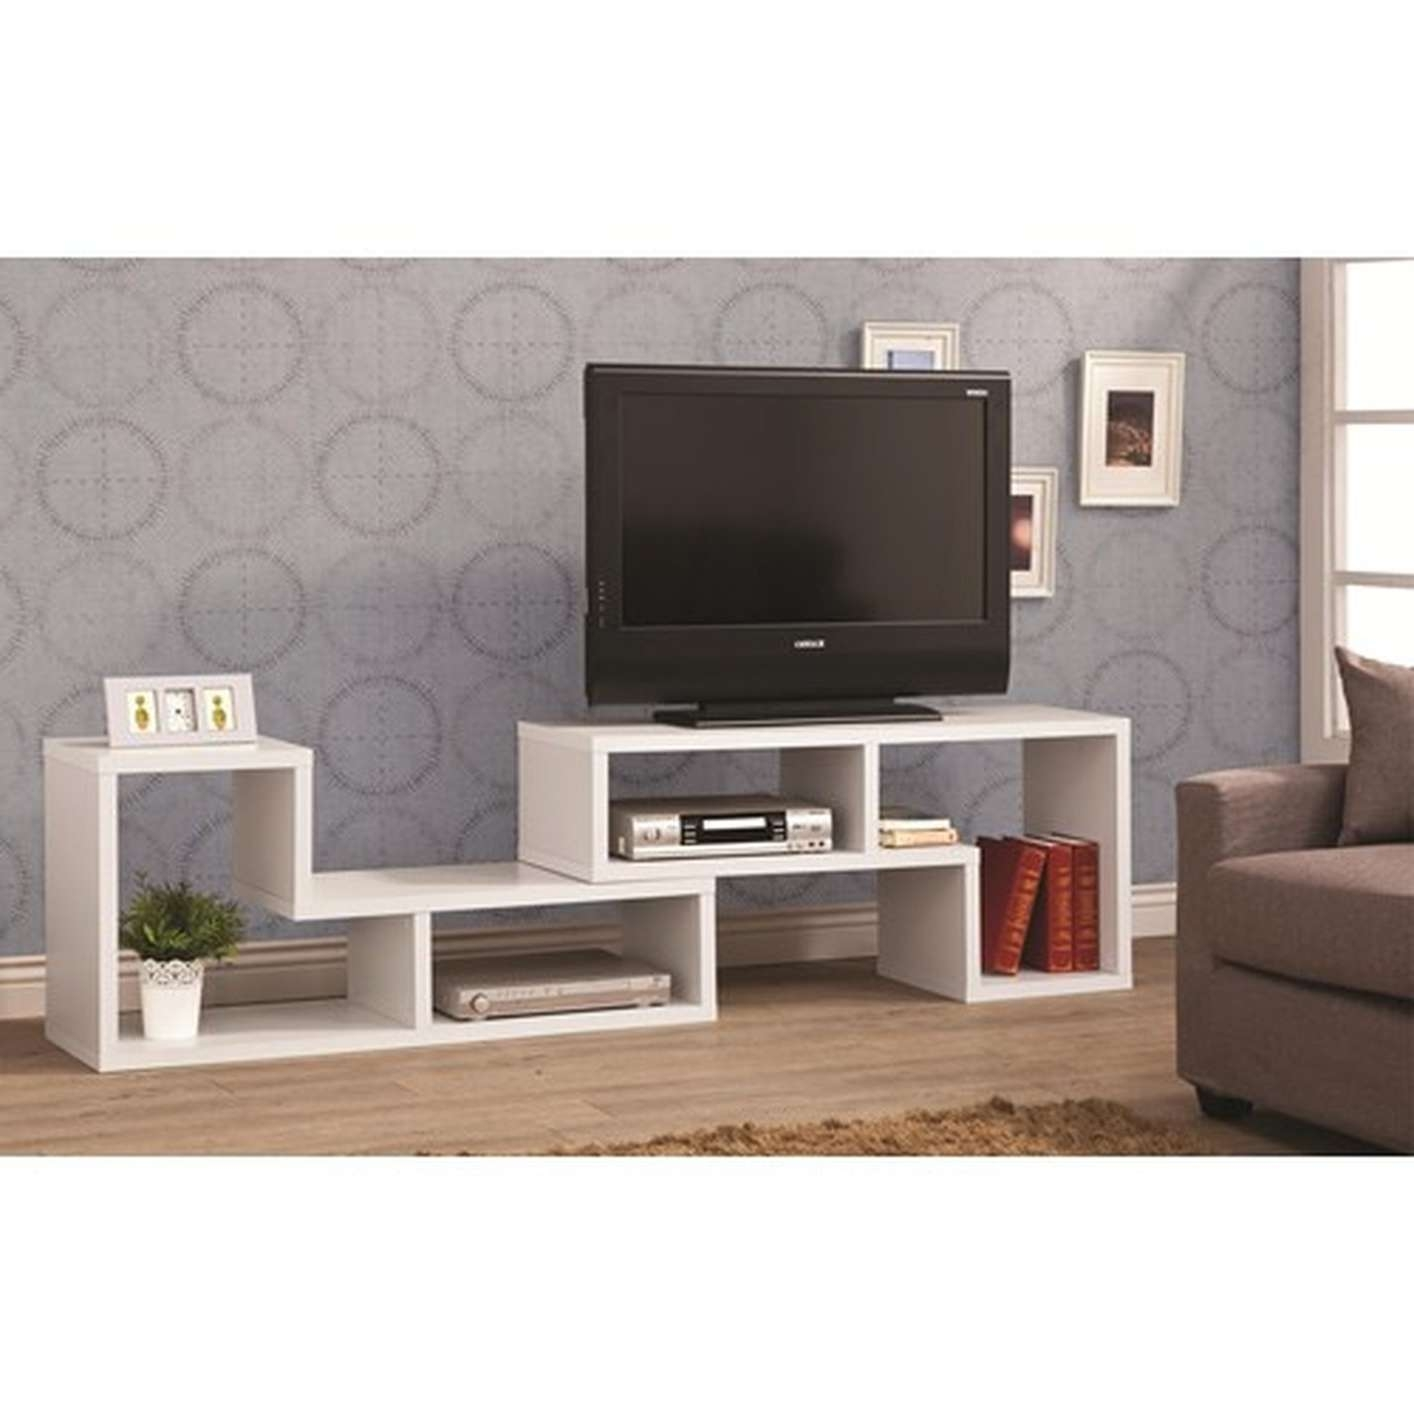 White Wood Tv Stand – Steal A Sofa Furniture Outlet Los Angeles Ca For White And Wood Tv Stands (View 3 of 15)